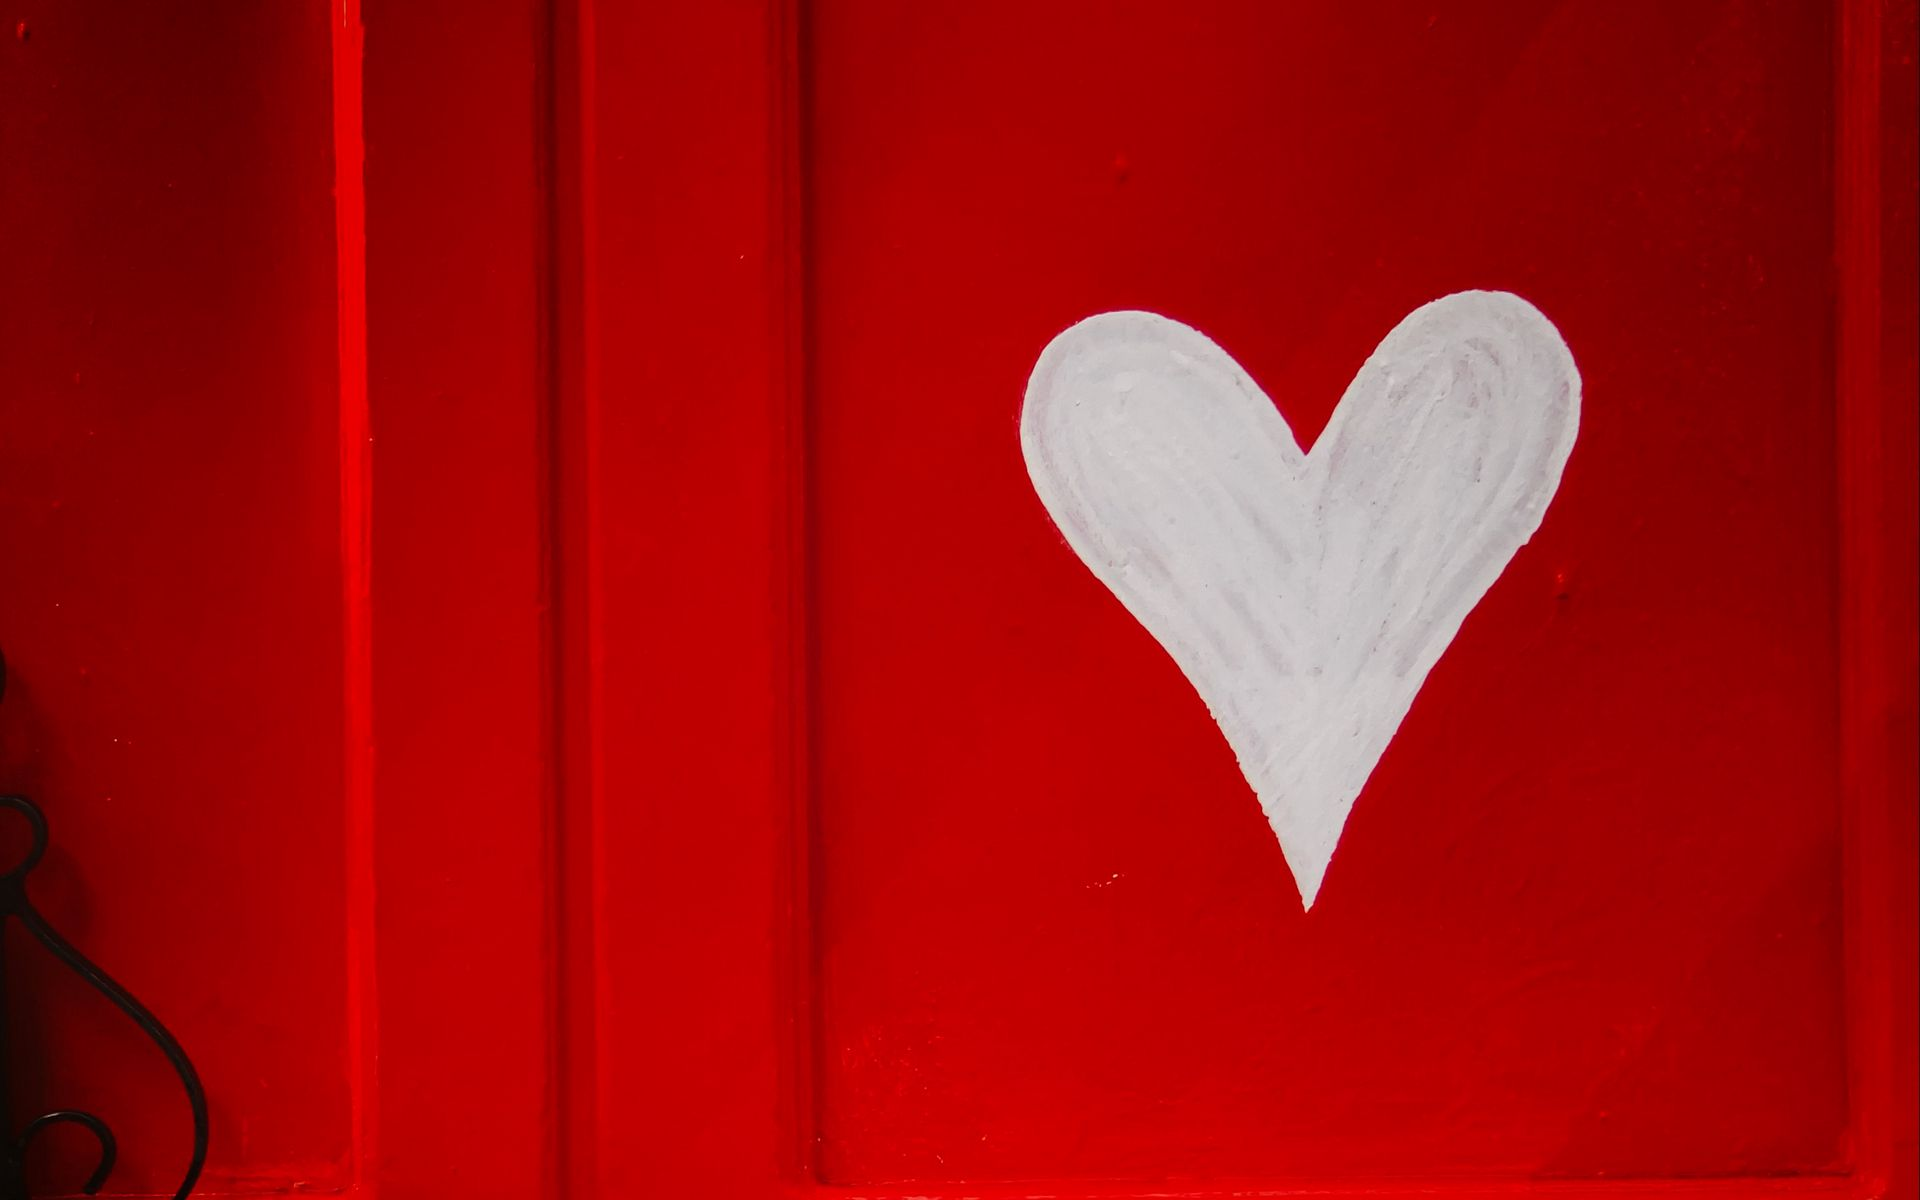 heart pictures 4k